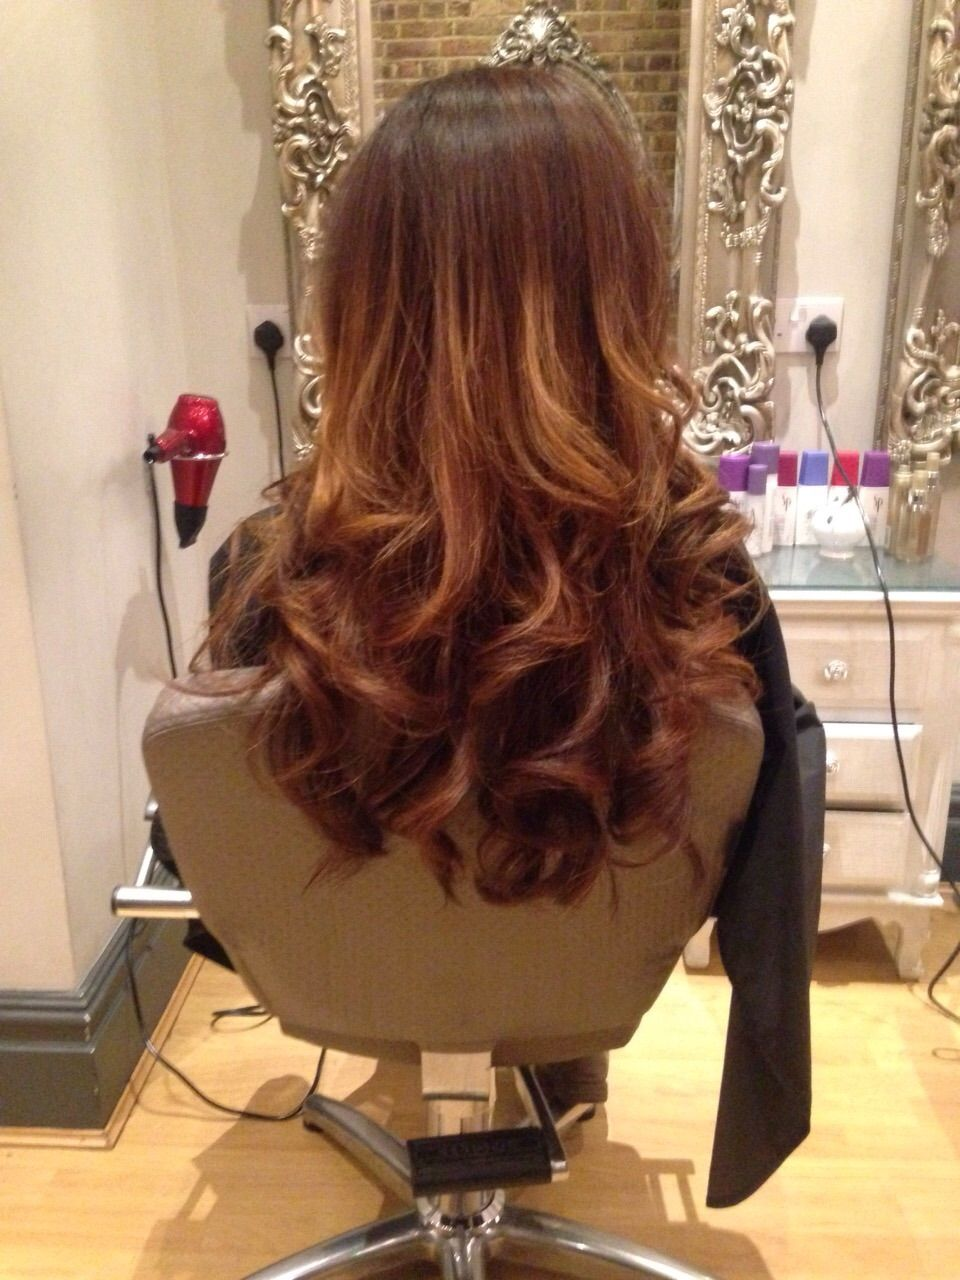 Curly Blowdry Created By One Of Our Trainees